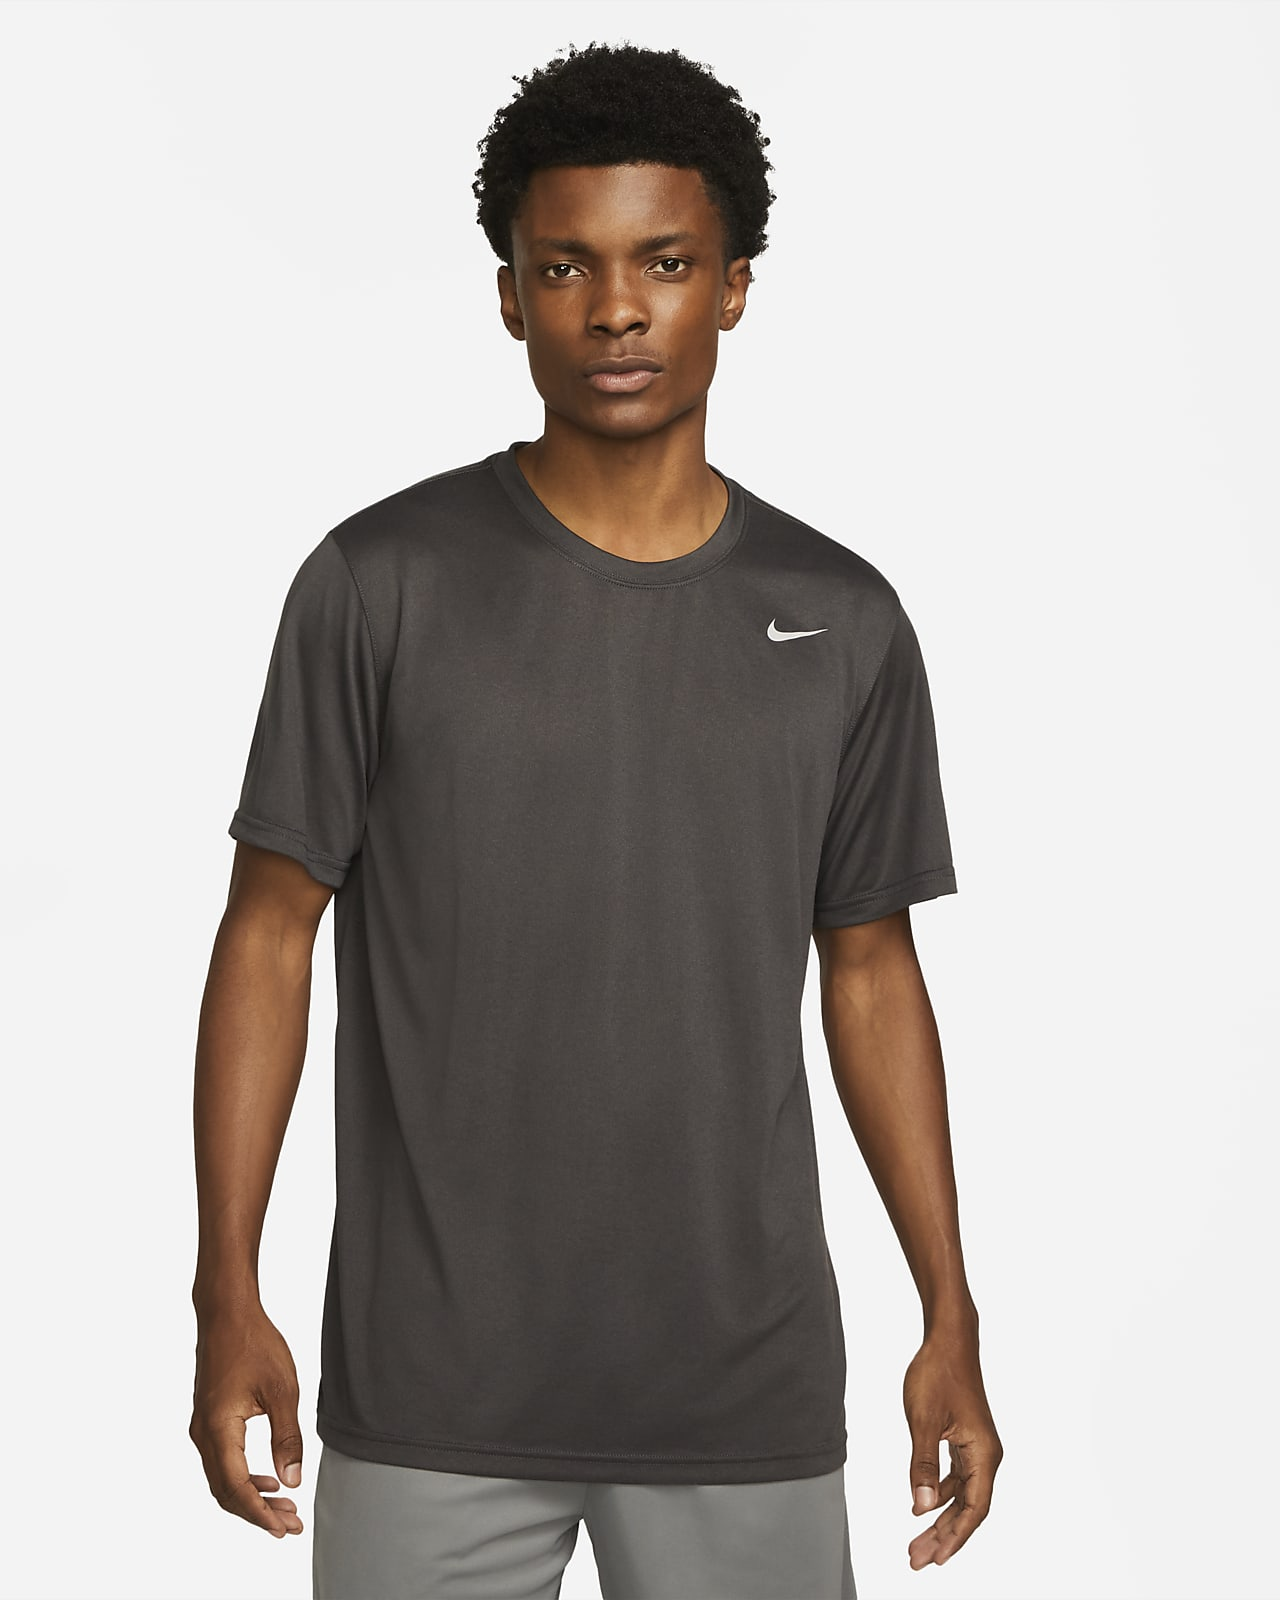 Nike Dri-FIT Legend Men's Training T-Shirt